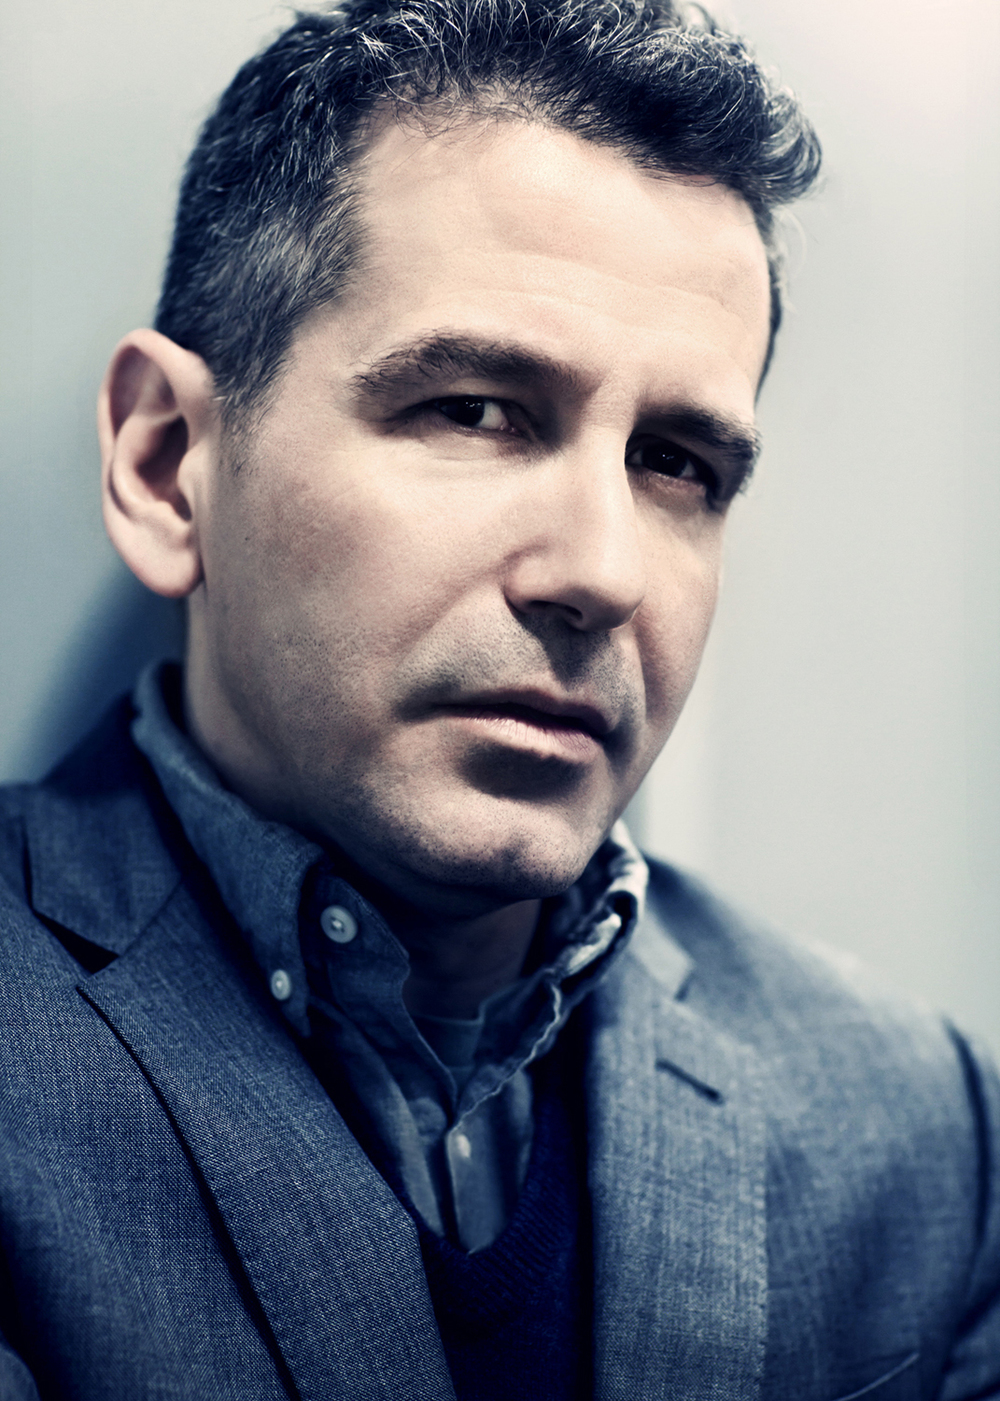 David Cromer, Director and Actor